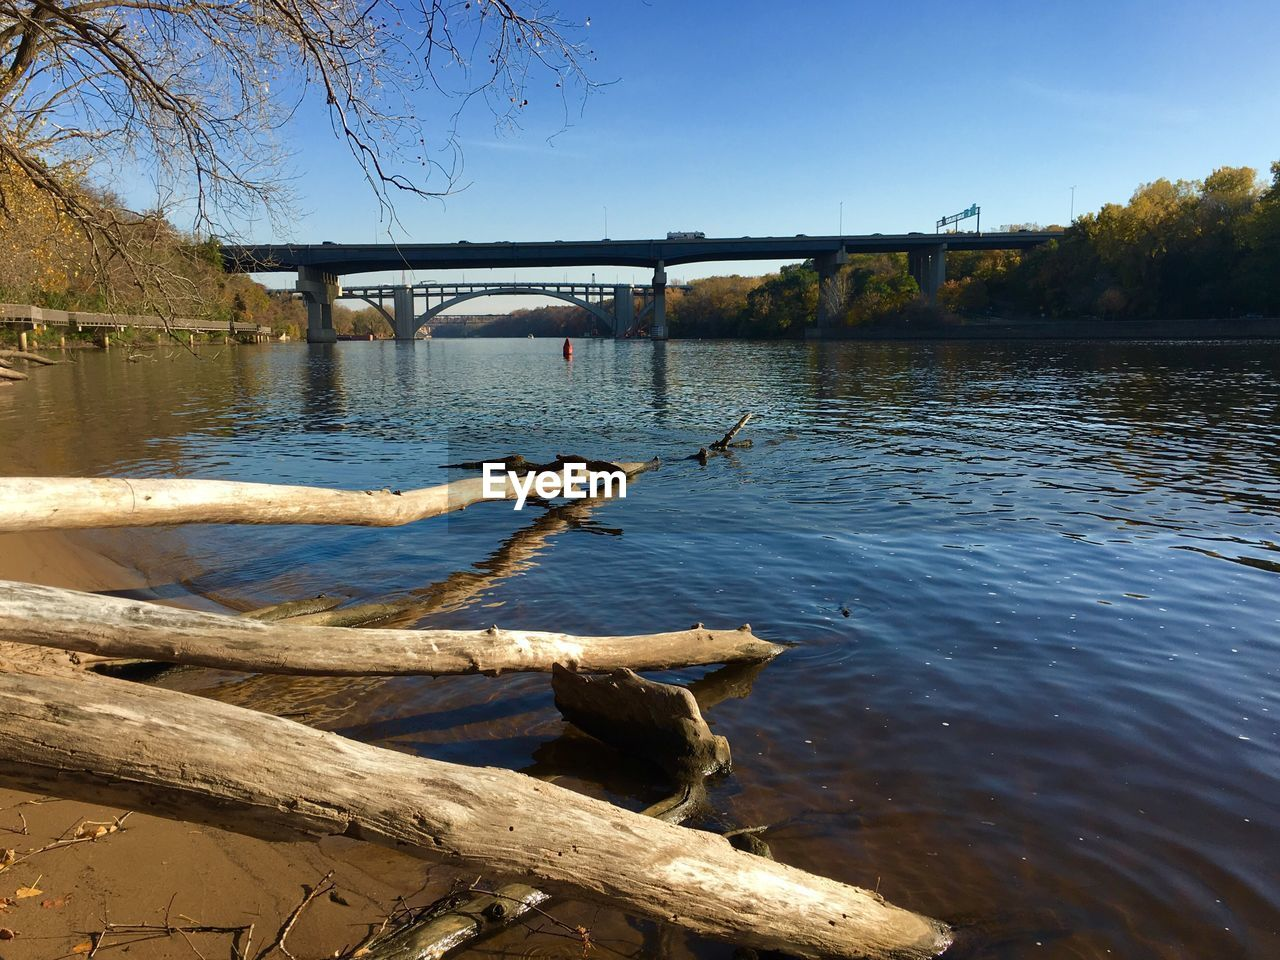 water, tree, river, nature, sky, bridge, connection, transportation, built structure, day, bridge - man made structure, architecture, plant, wood - material, no people, tranquility, sunlight, outdoors, wood, driftwood